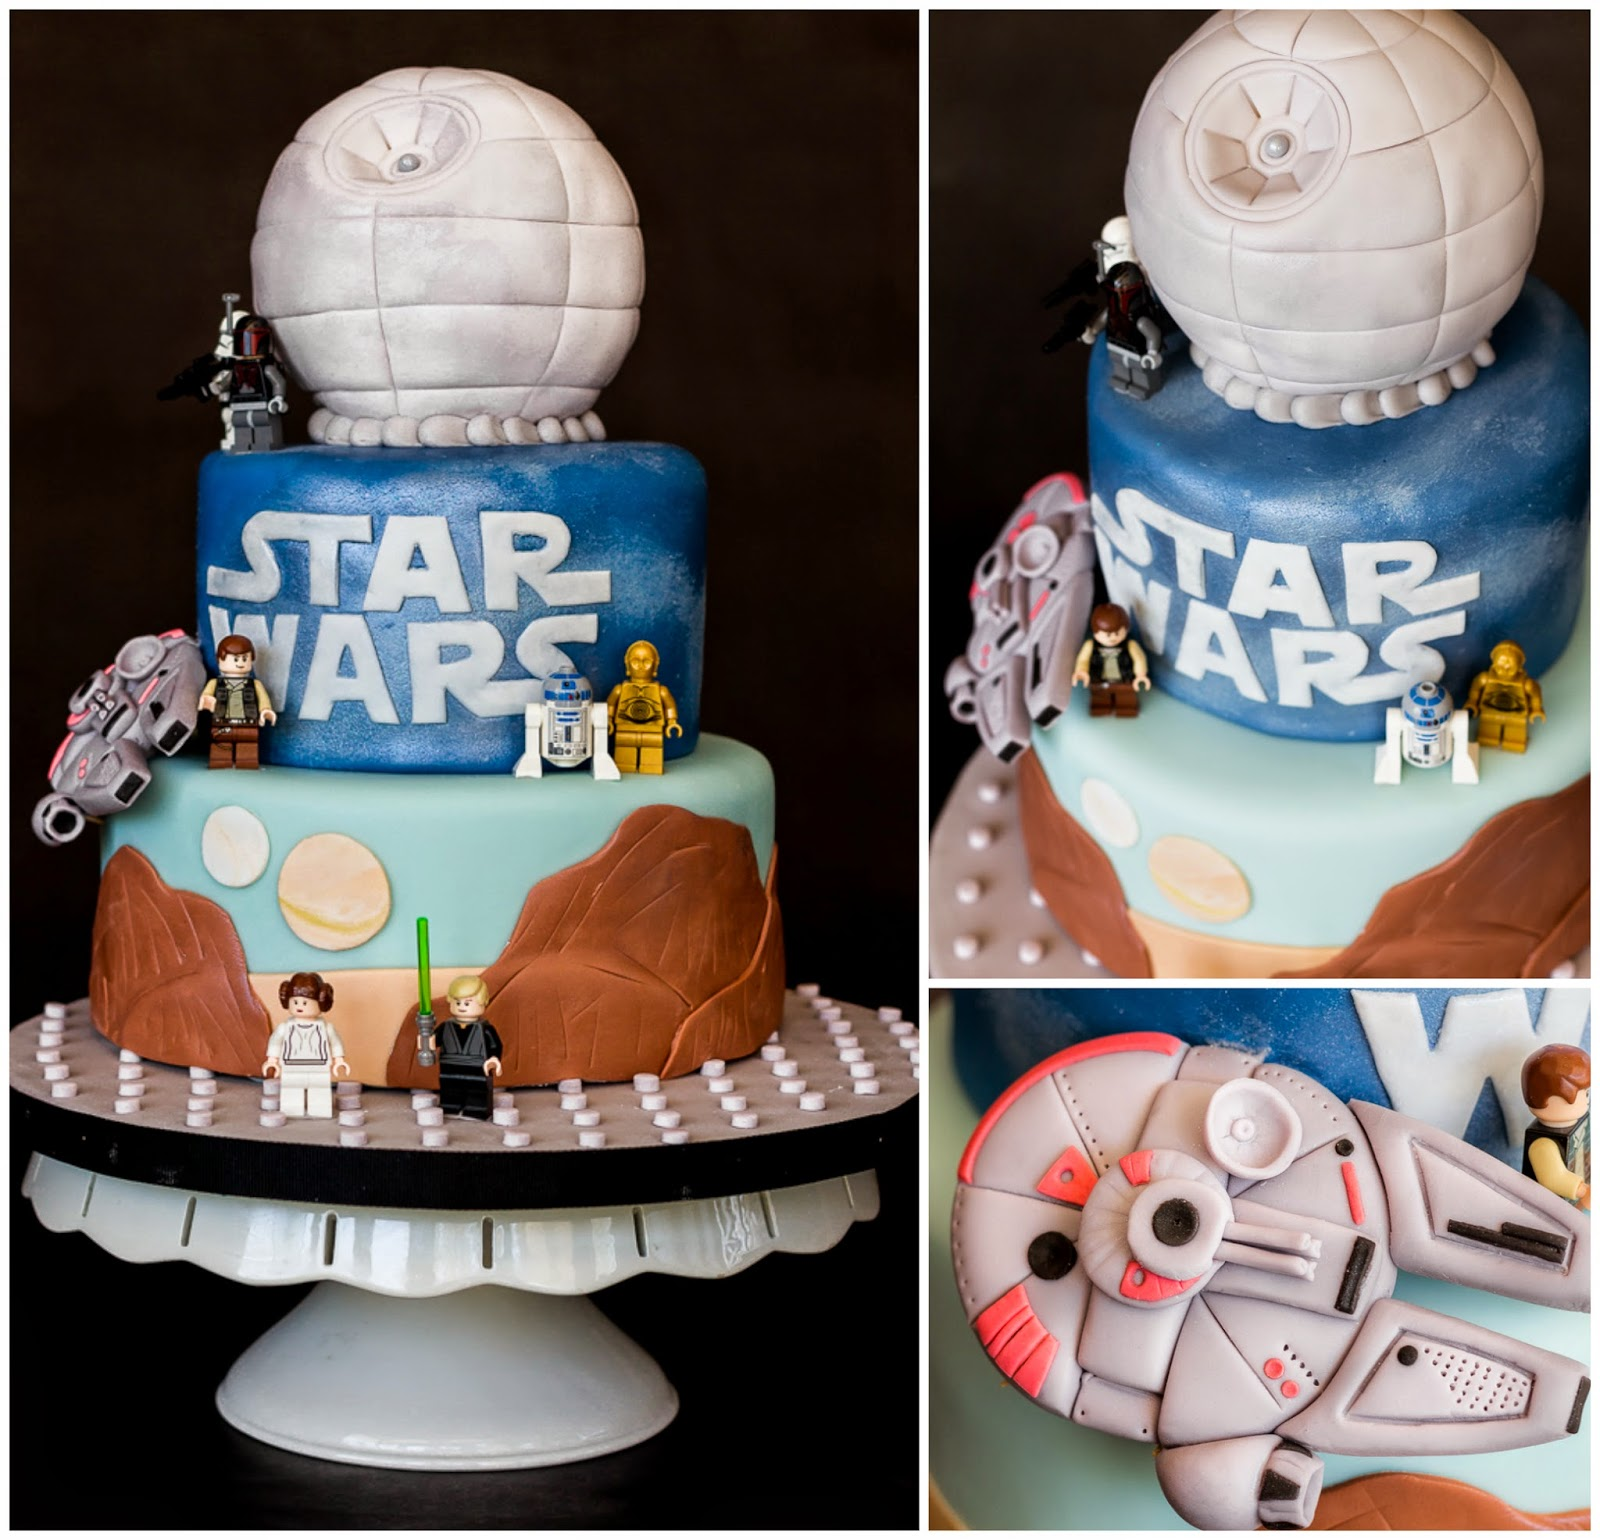 Trs Sucr Custom Confections Star Wars Cake